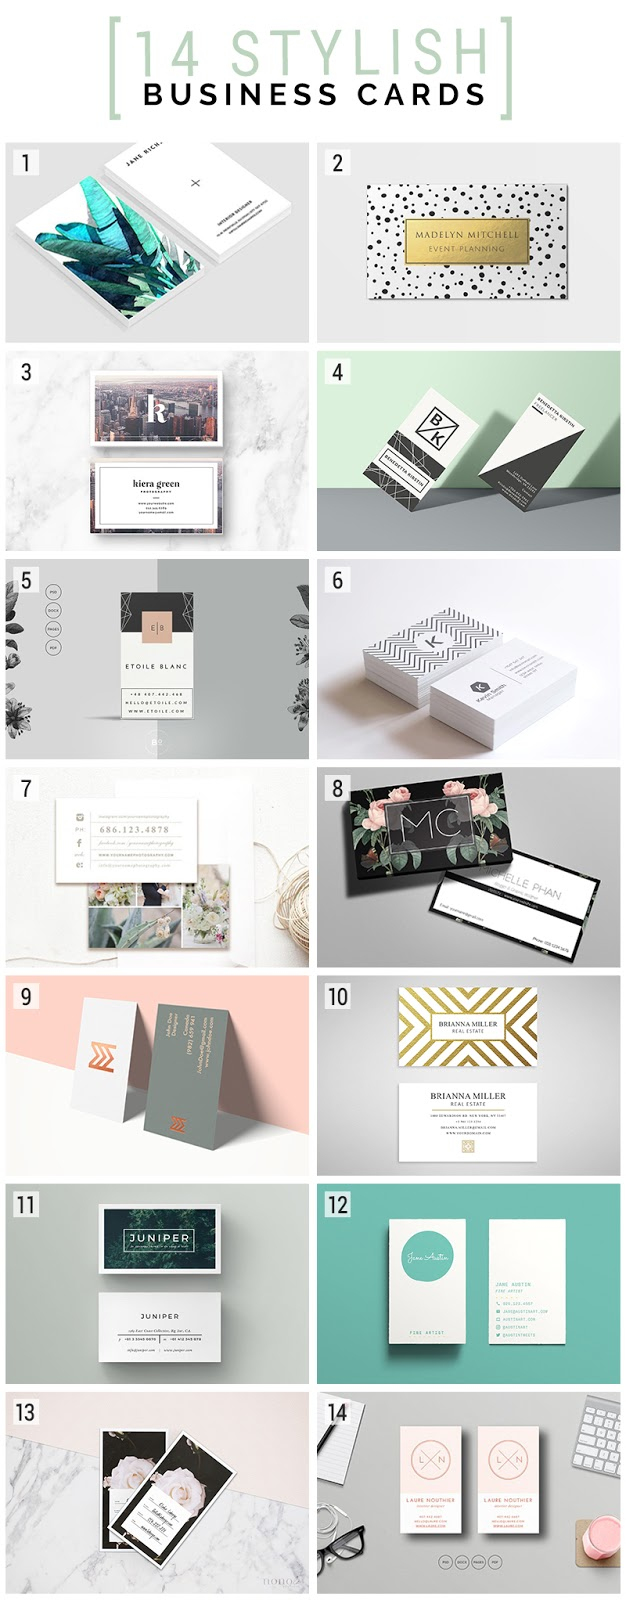 stylish, classy, trendy business cards designs